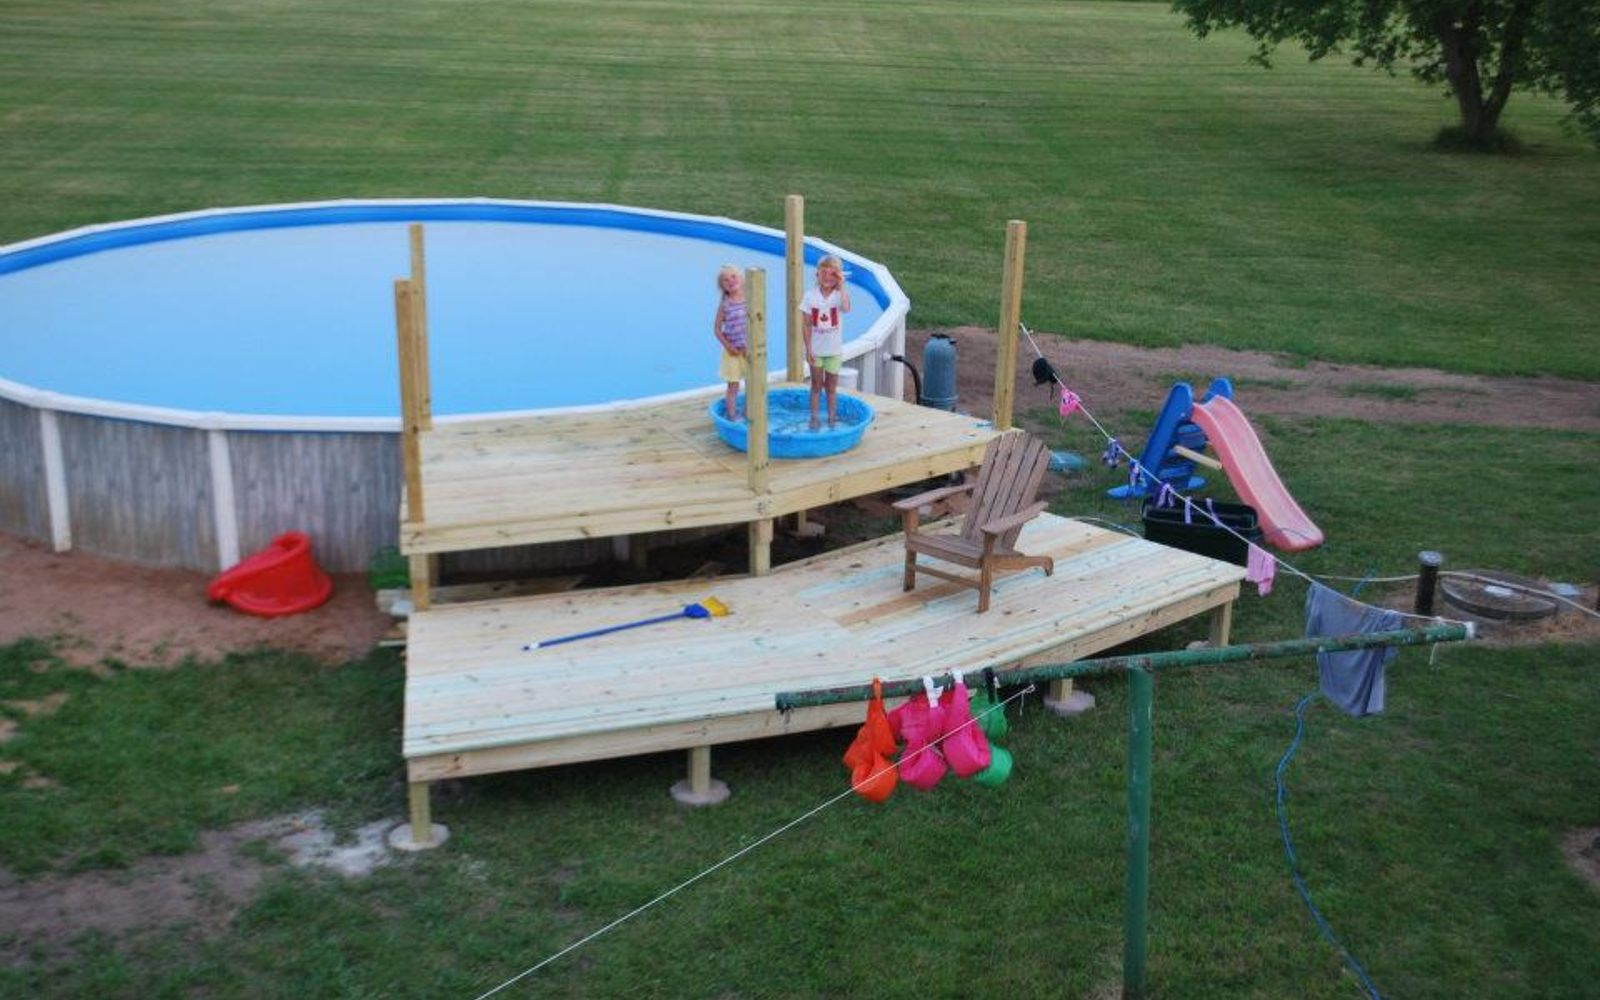 s wow 11 dreamy ideas for people who have backyard pools, outdoor living, pool designs, Construct a large platform for play storage